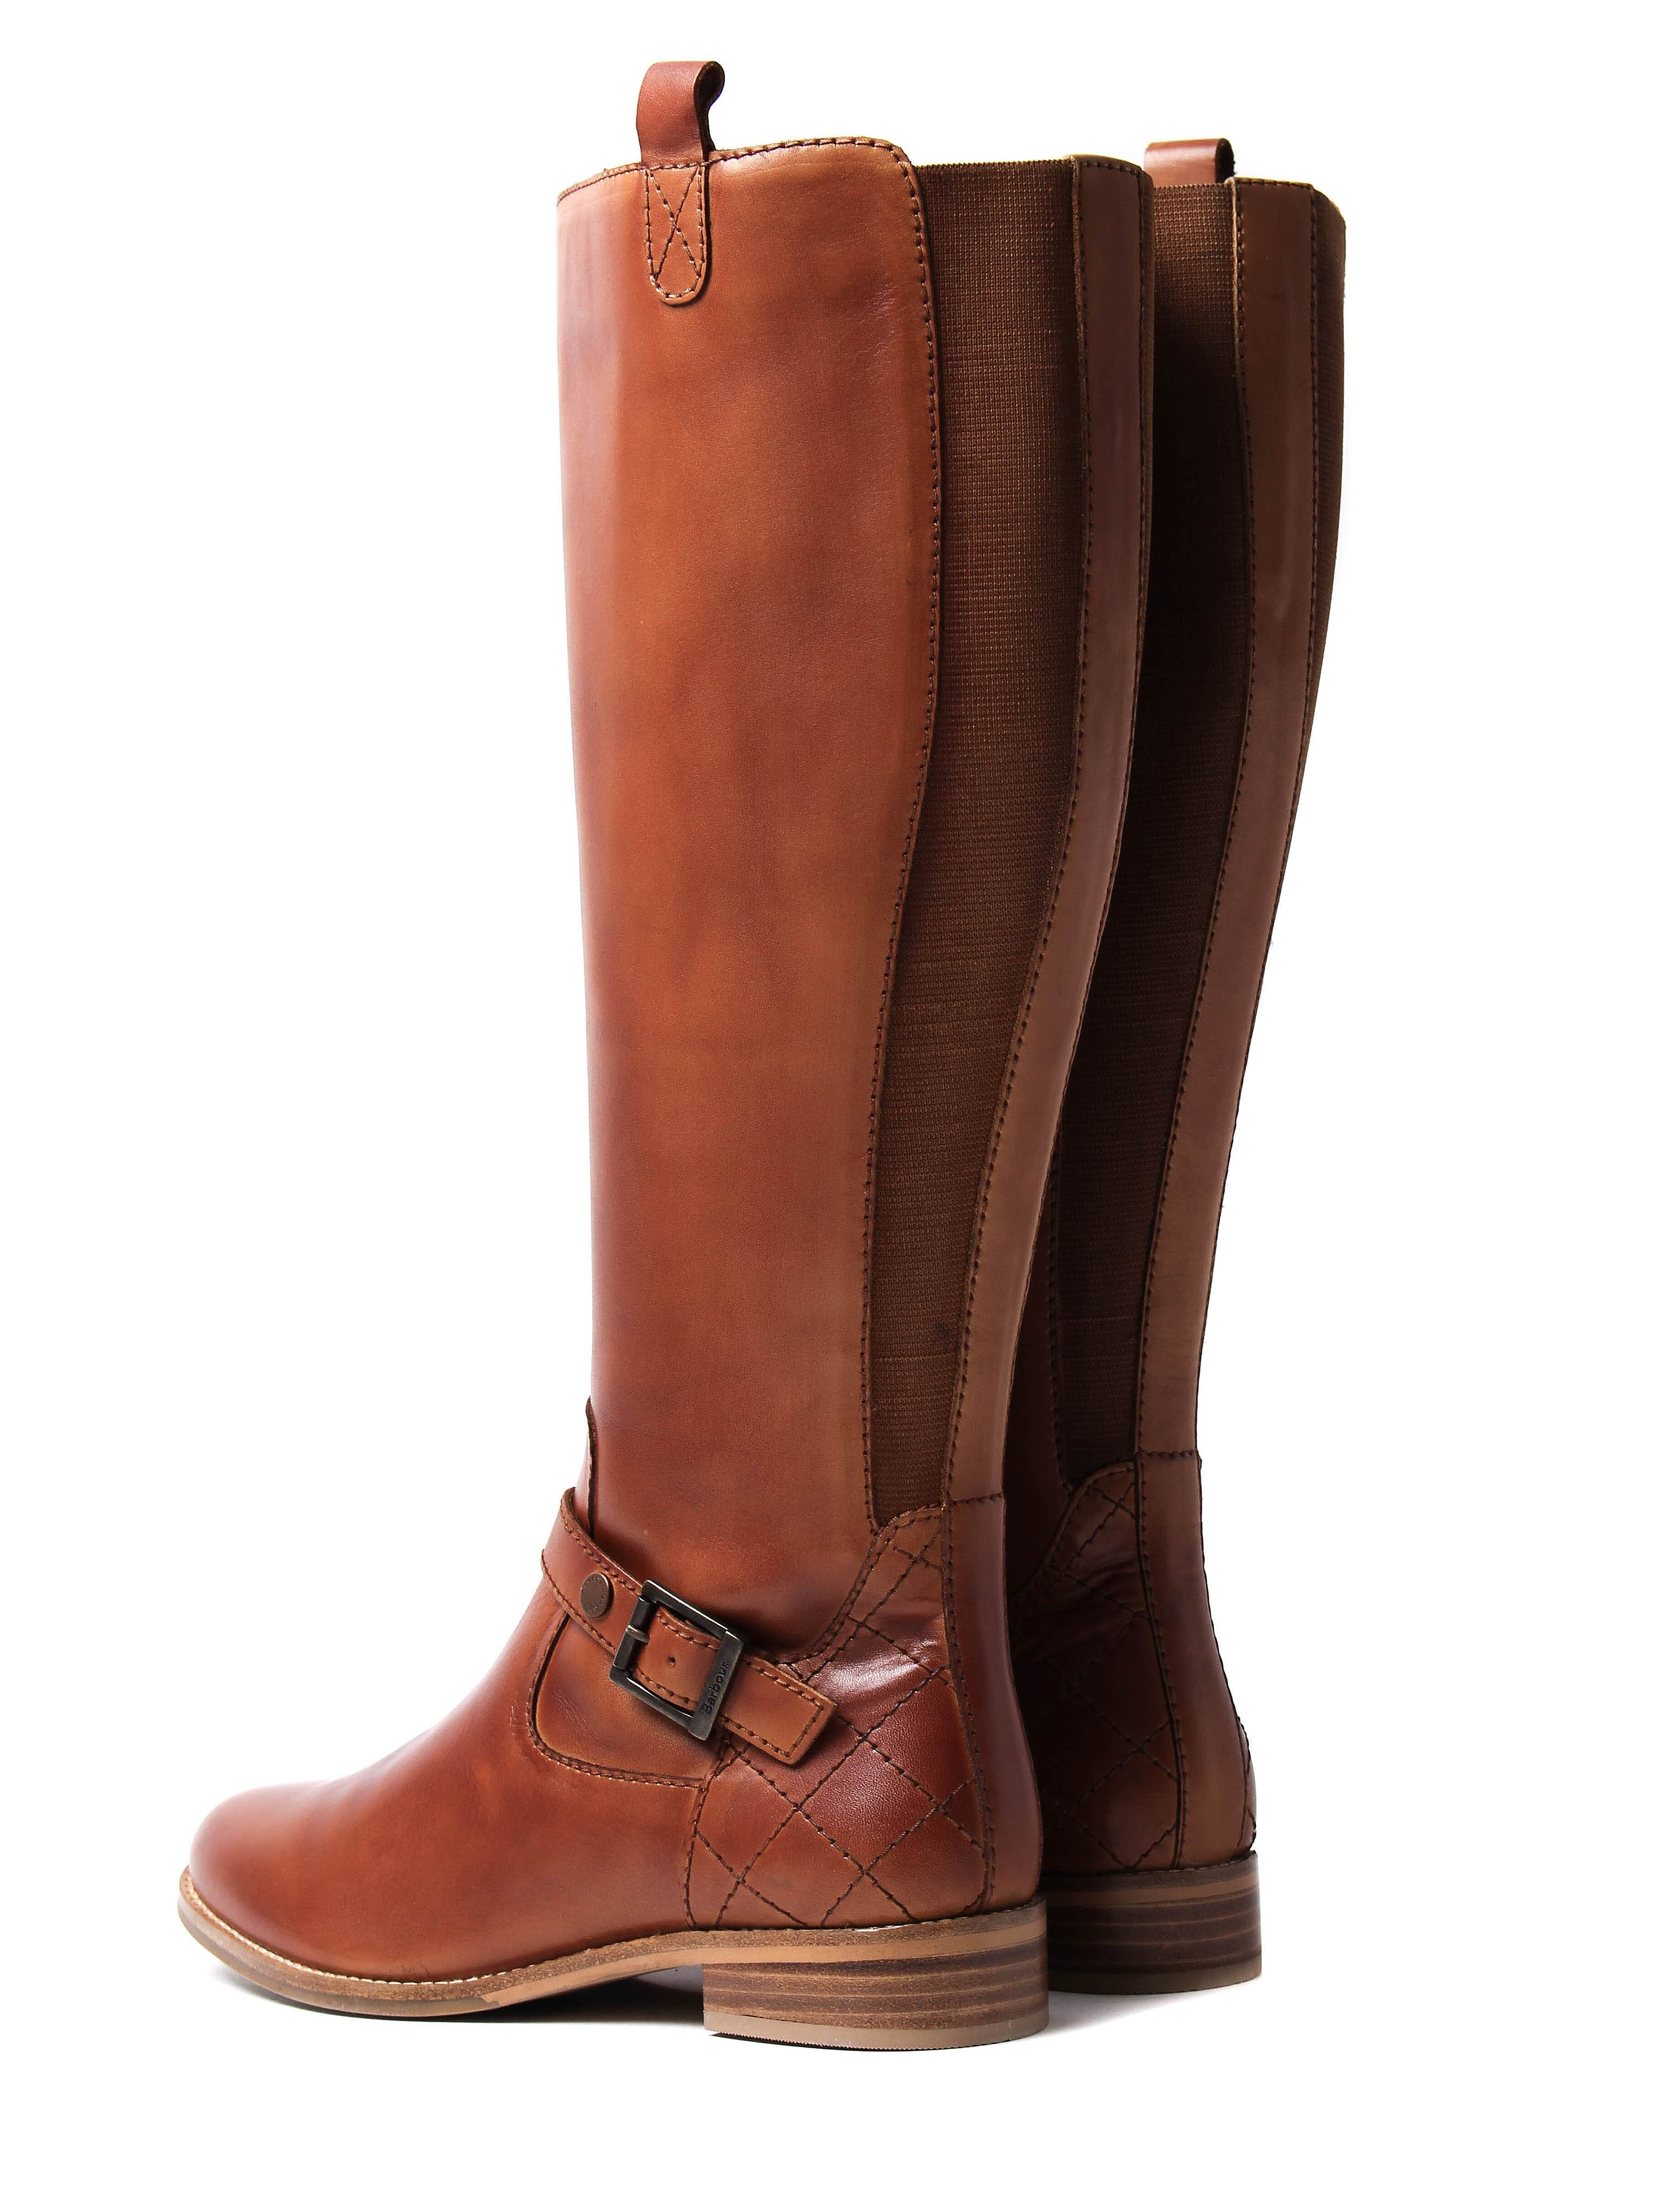 Barbour Women's Georgia Tall Boots - Tan Leather